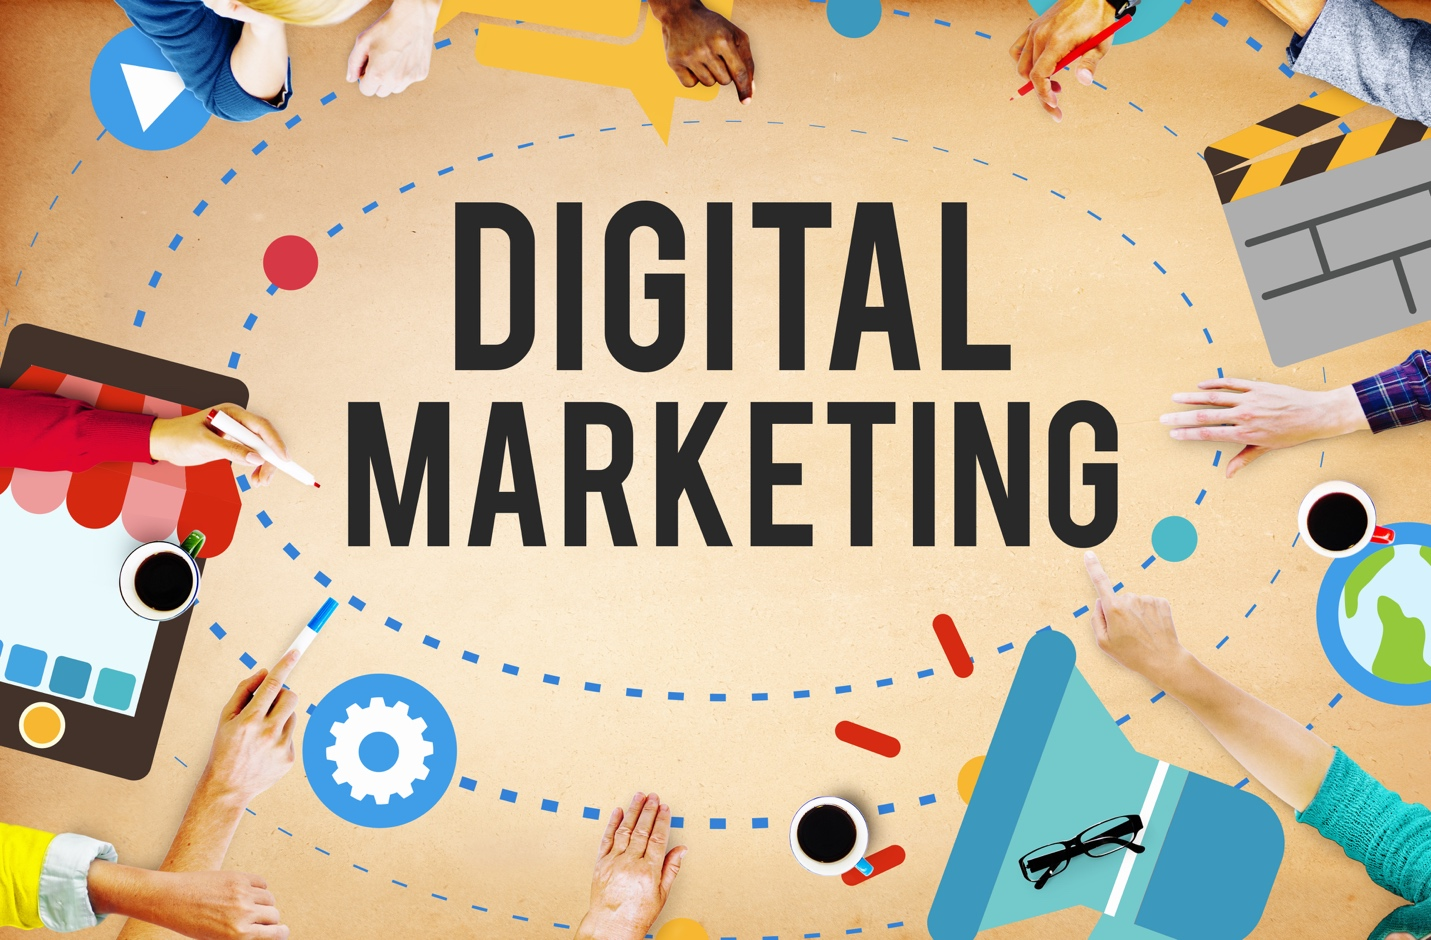 Ideas of Digital Marketing